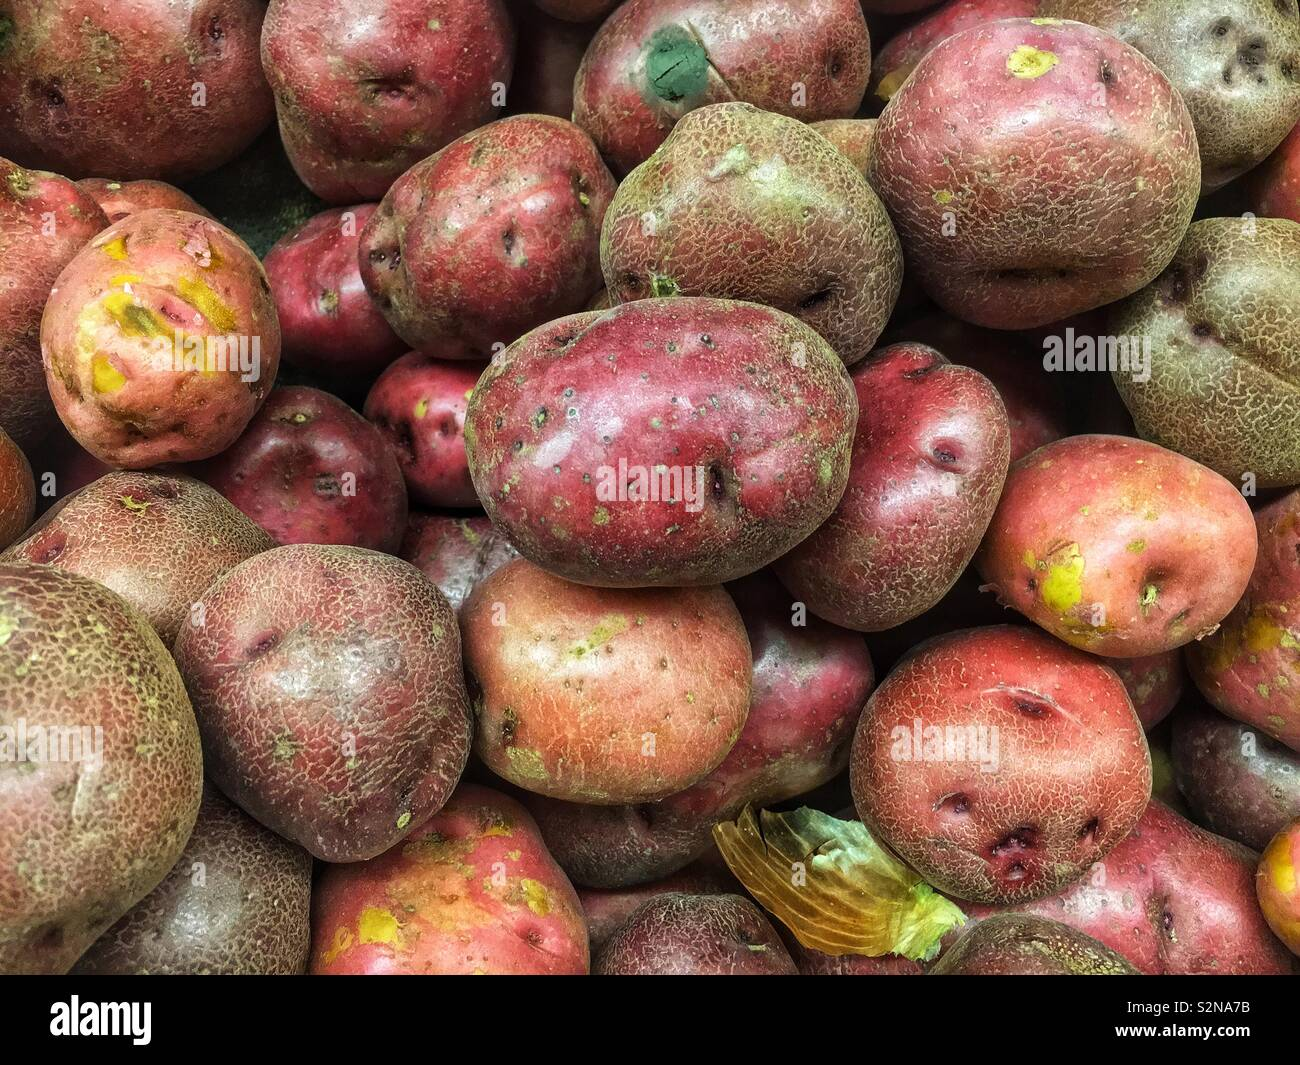 Raw perfect red potatoes on display and for sale at the local produce market. - Stock Image